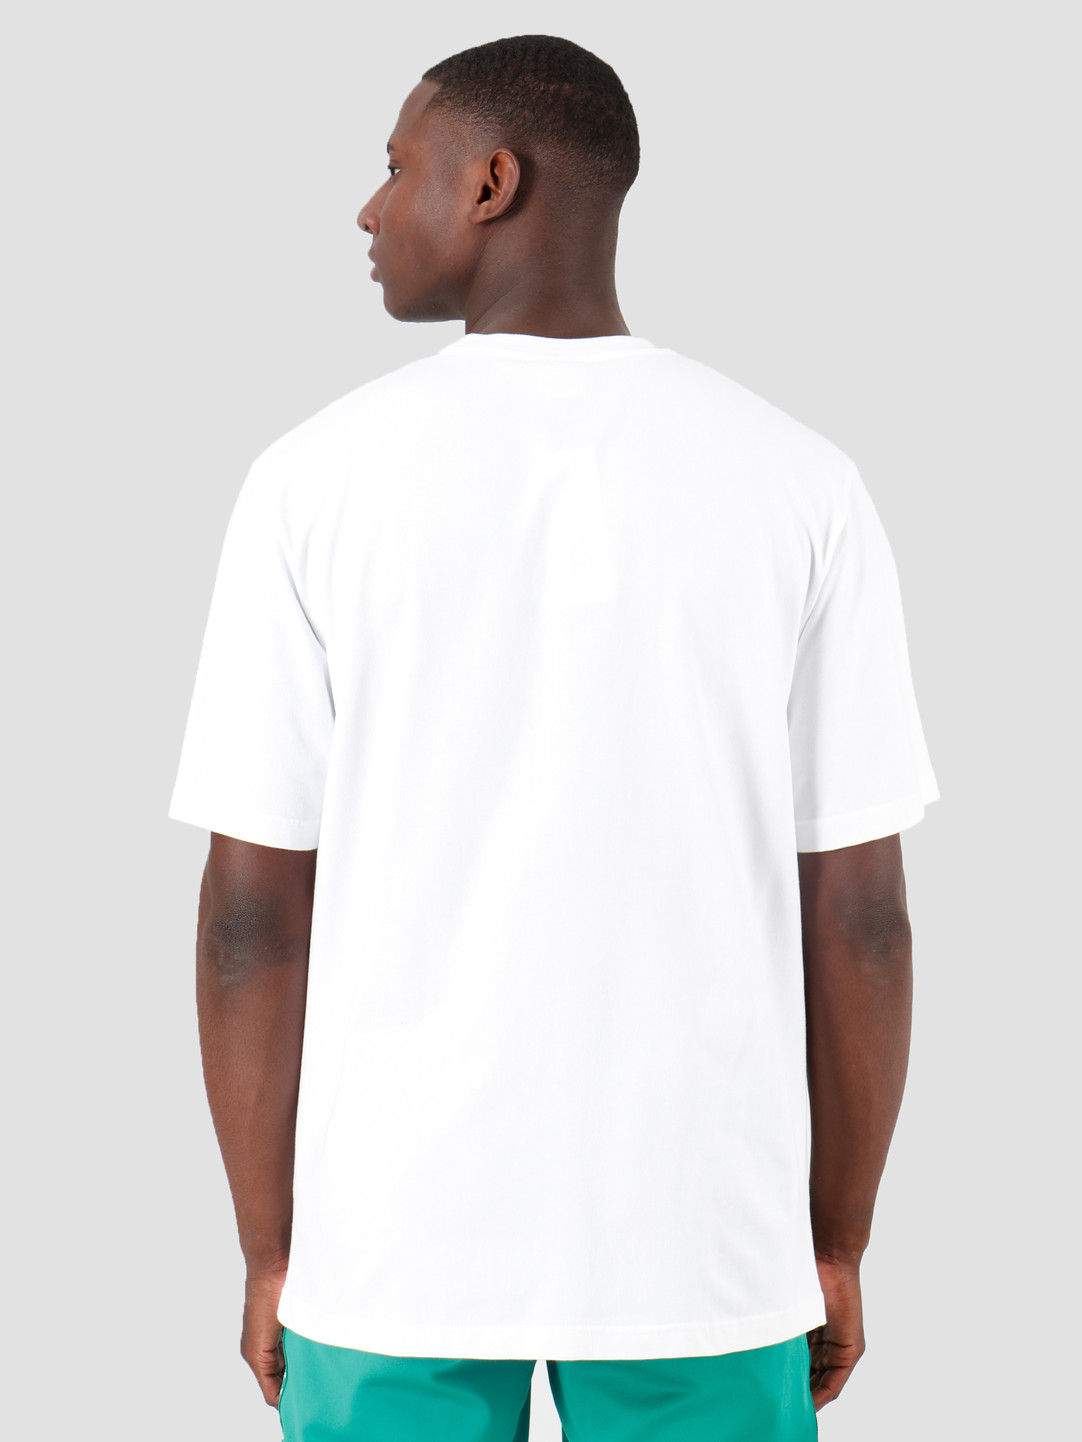 Daily Paper Daily Paper Gous 1 T-Shirt White 19F1TS30-01